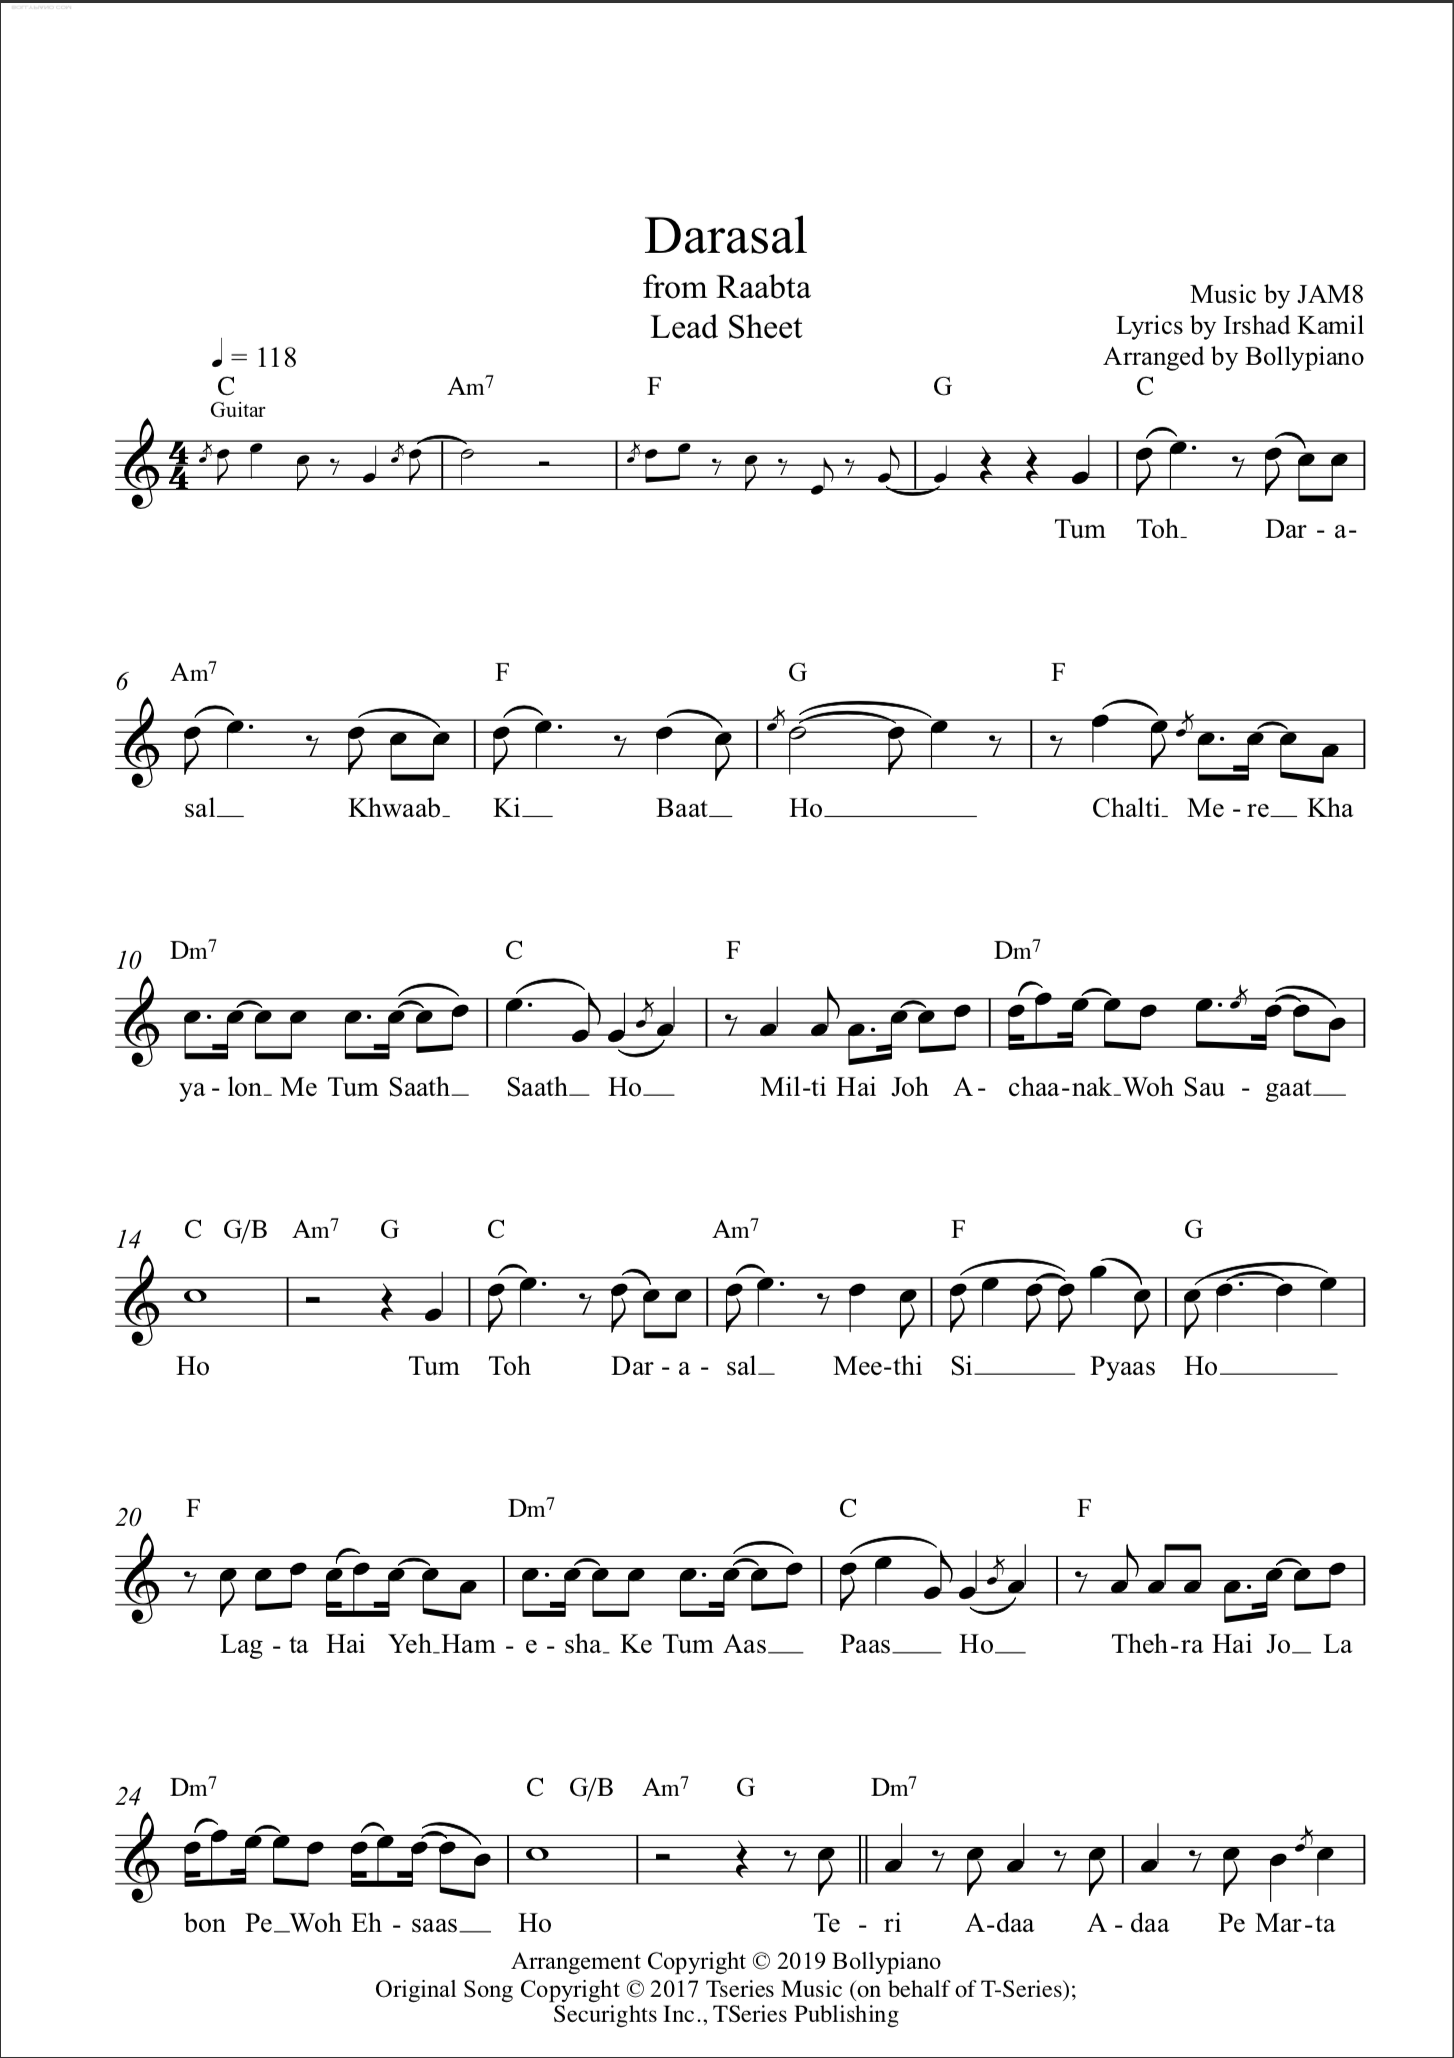 Darasal Flute Violin Notes Lead Sheet Music Pdf This song is a soothing number beautifully sung by arijit singh and the music is by sharib & toshi. darasal flute violin notes lead sheet music pdf